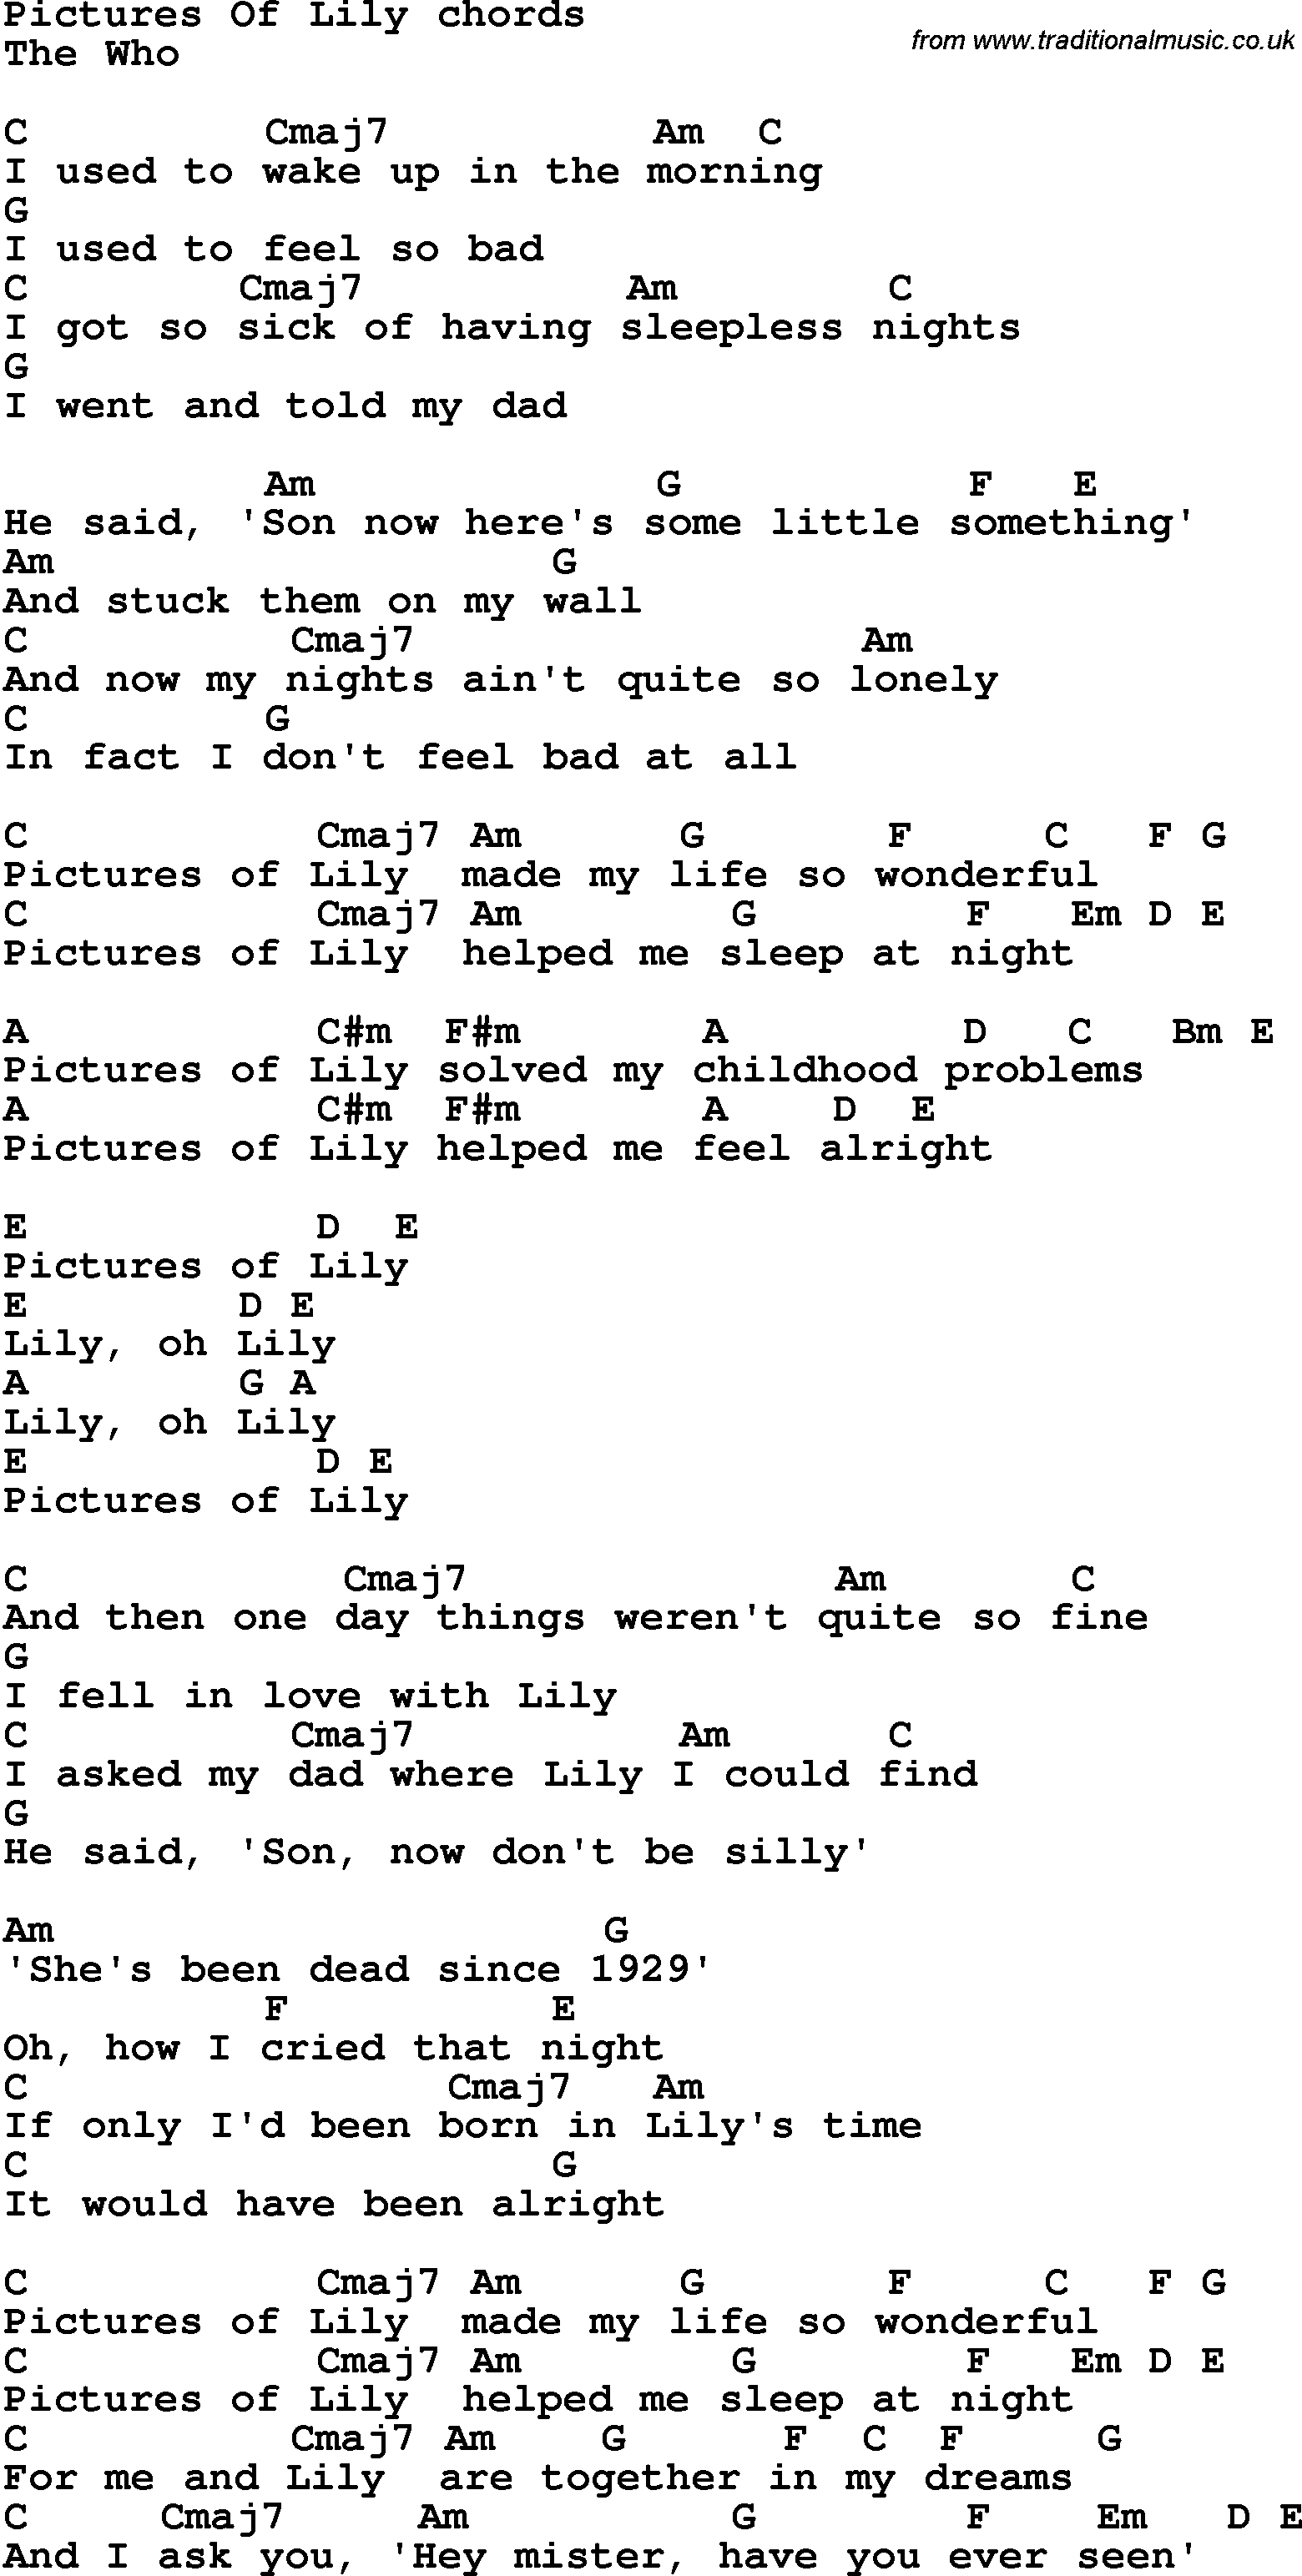 Song lyrics with guitar chords for Pictures Of Lily Pictures Of Lily Lyrics